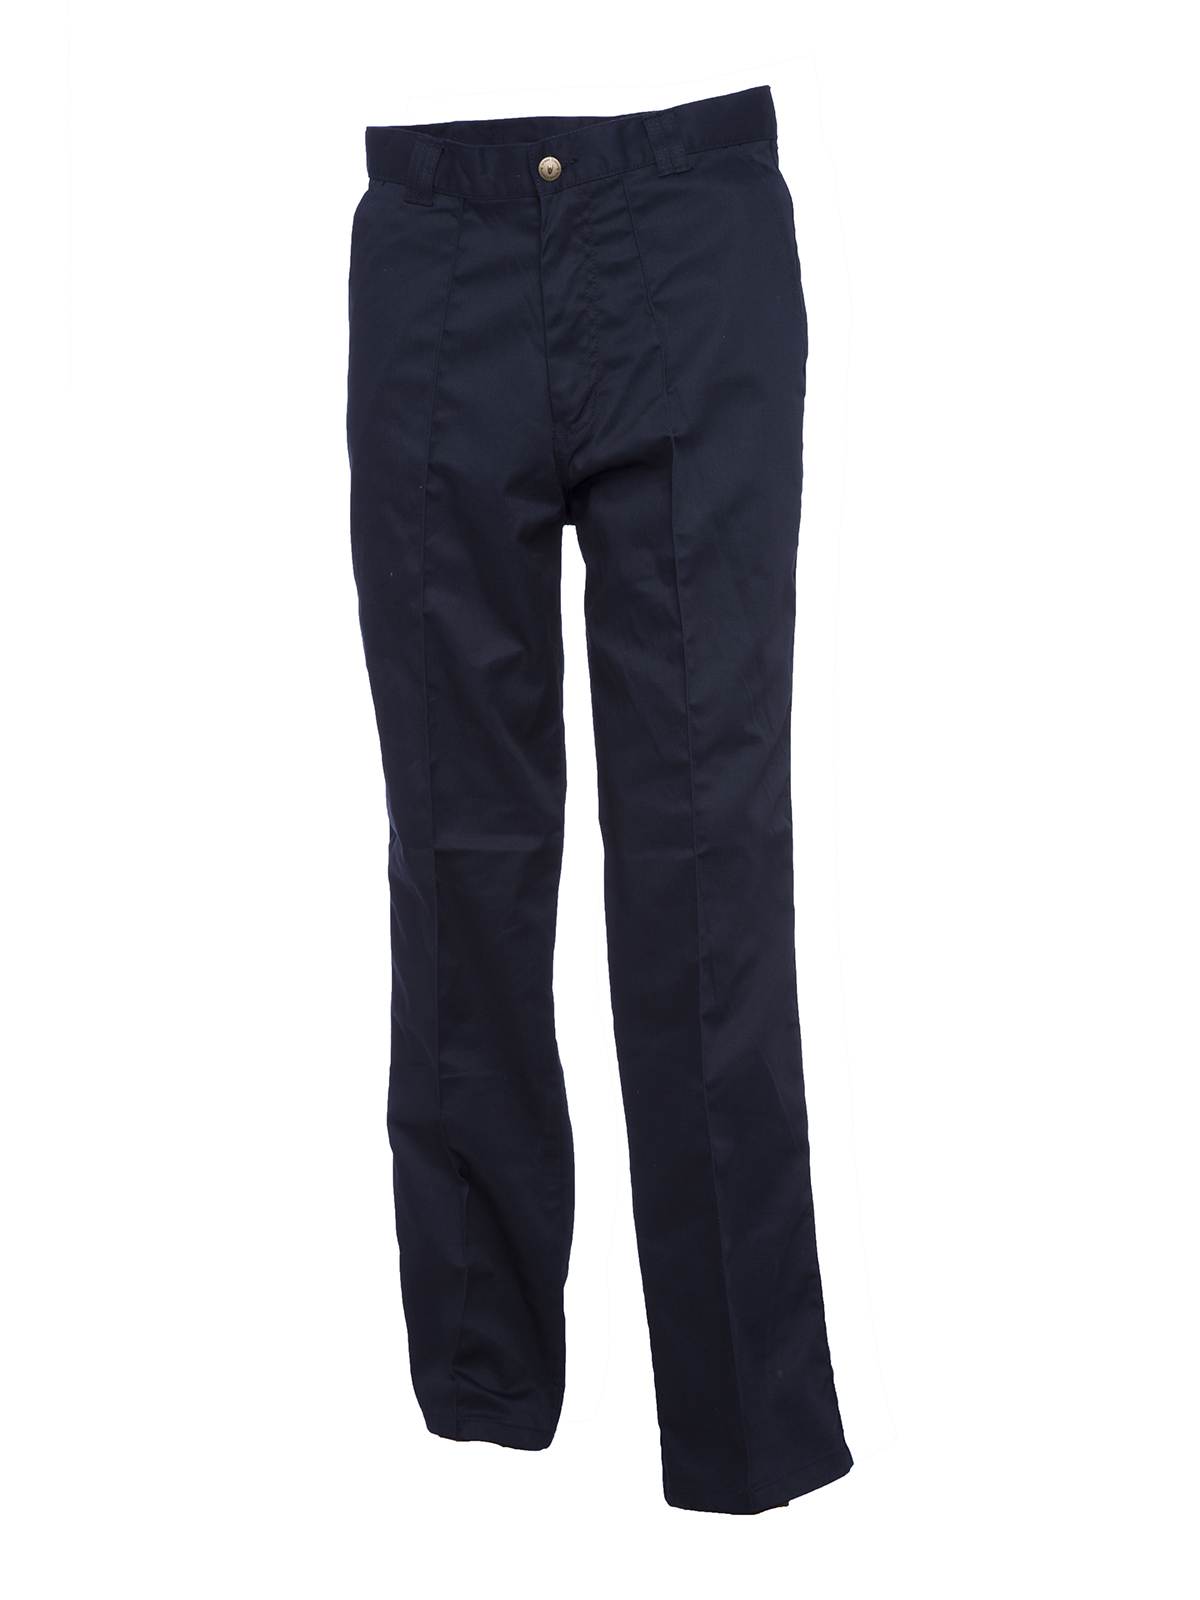 Uneek Workwear Trousers